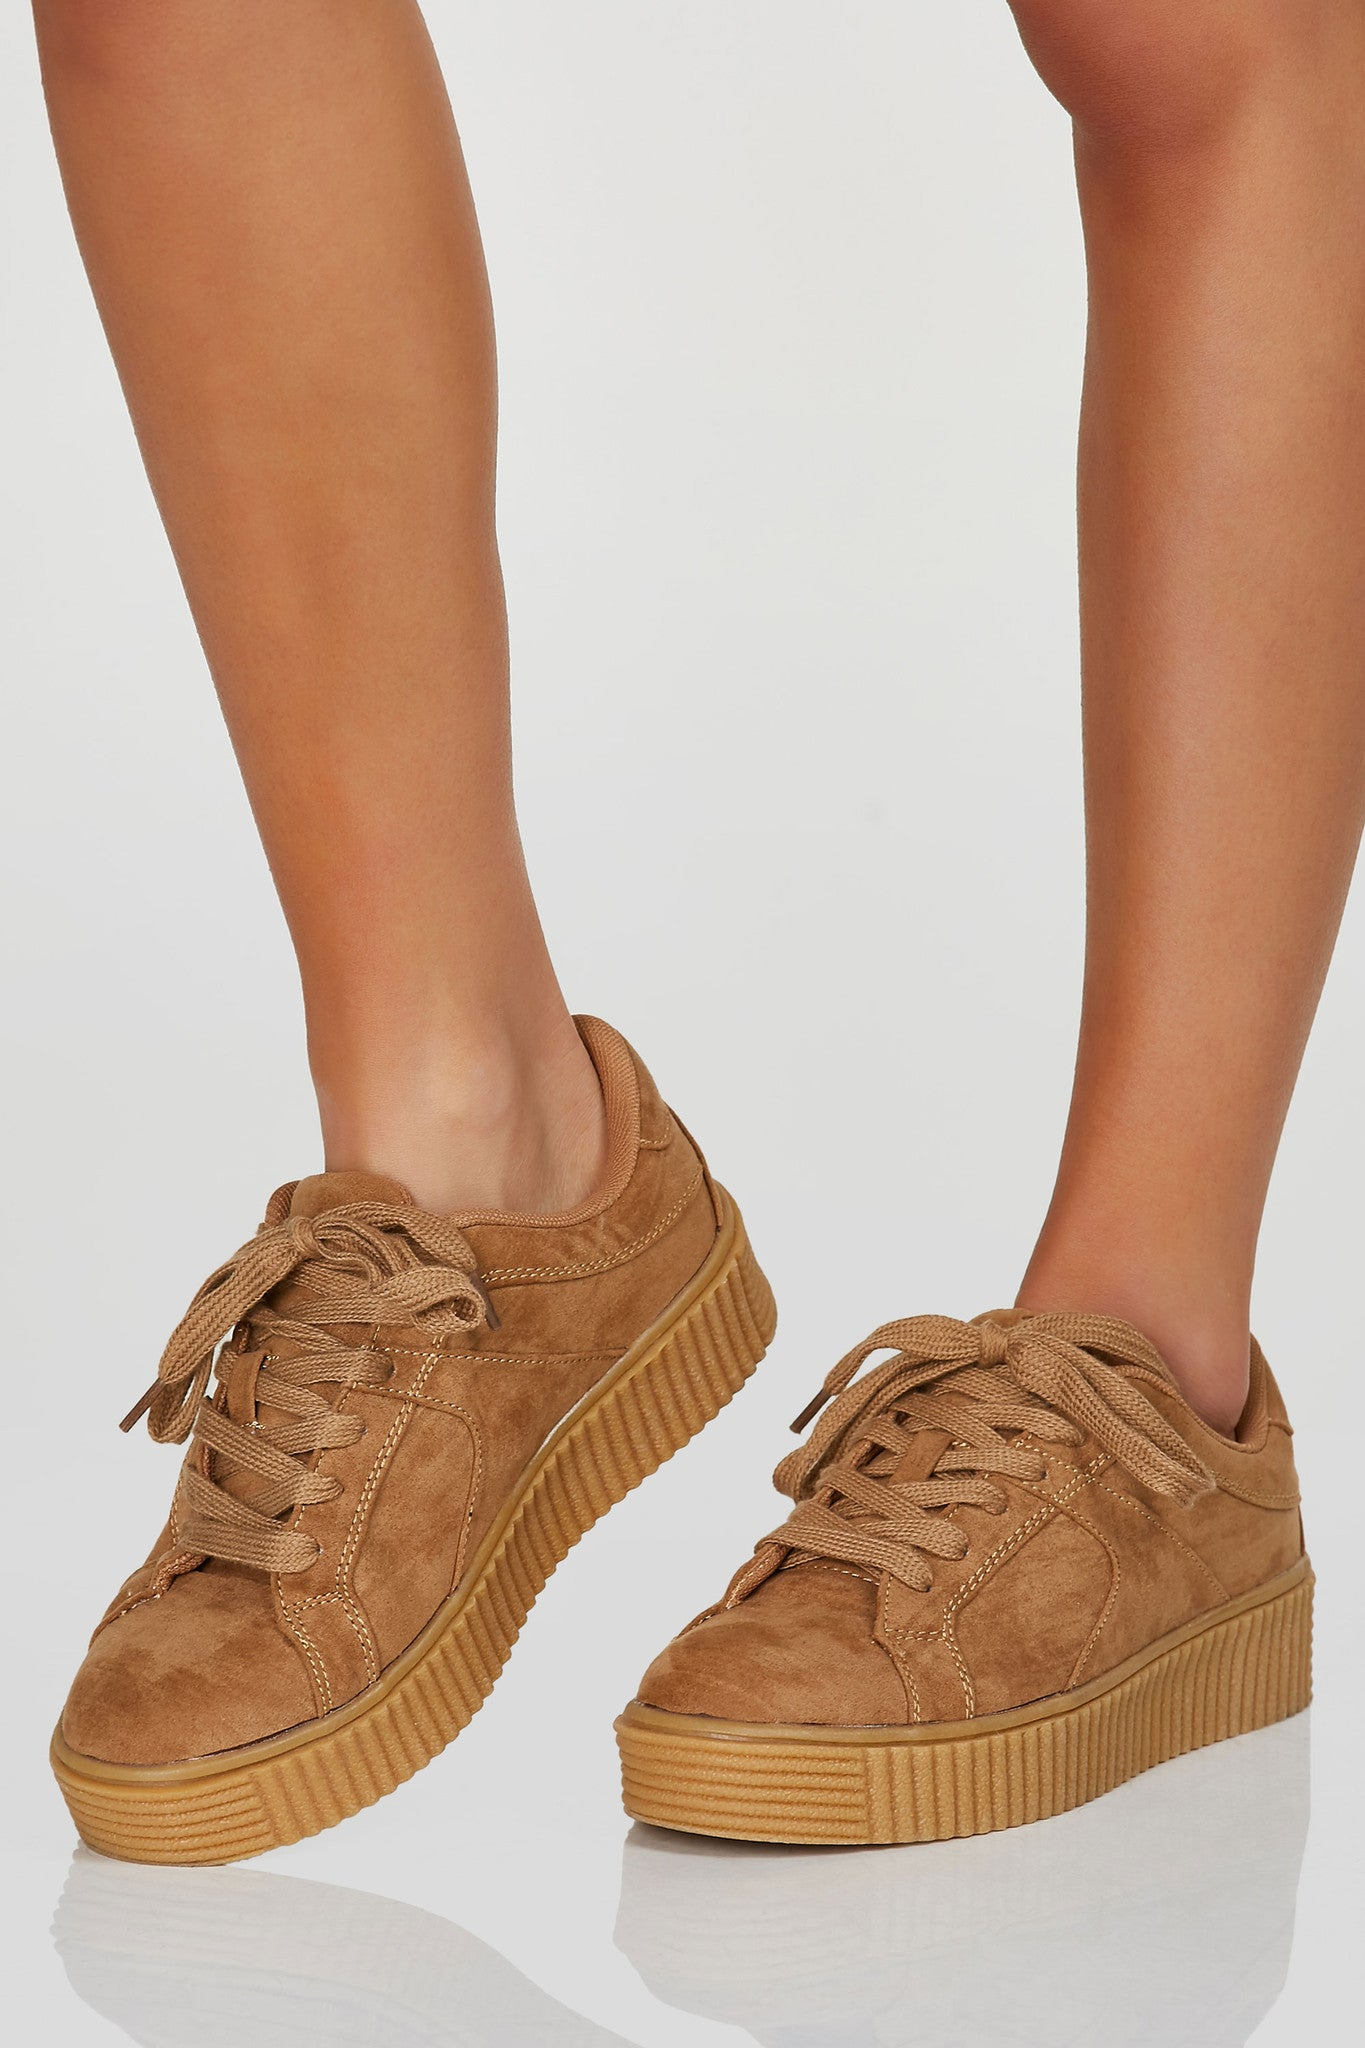 A trendy pair of classic creeper style sneakers with soft suede finish. Lace up closure with adjustable fit with comfy platform soles.